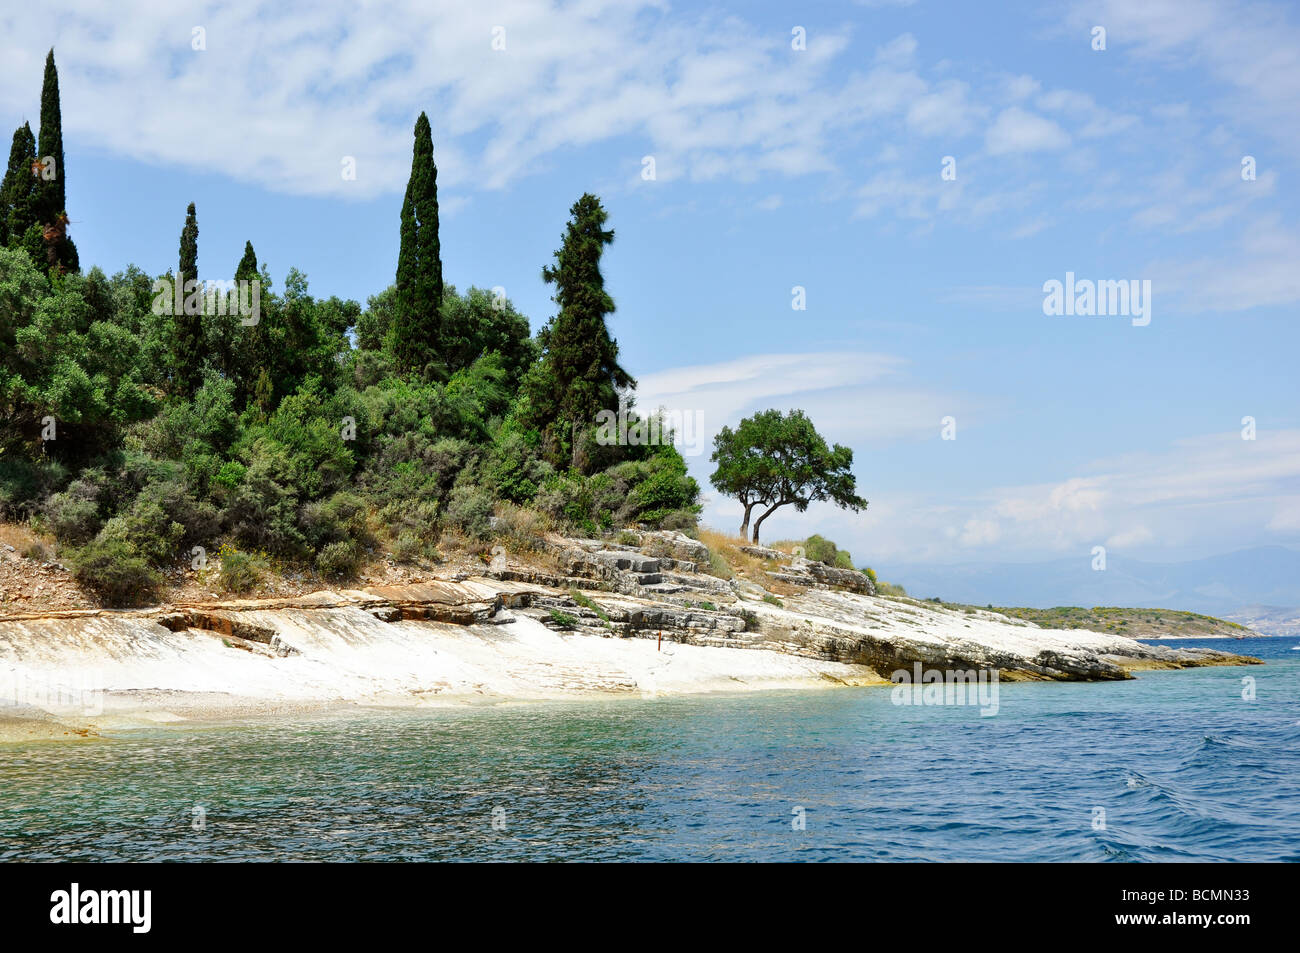 NE coast of Corfu - Stock Image